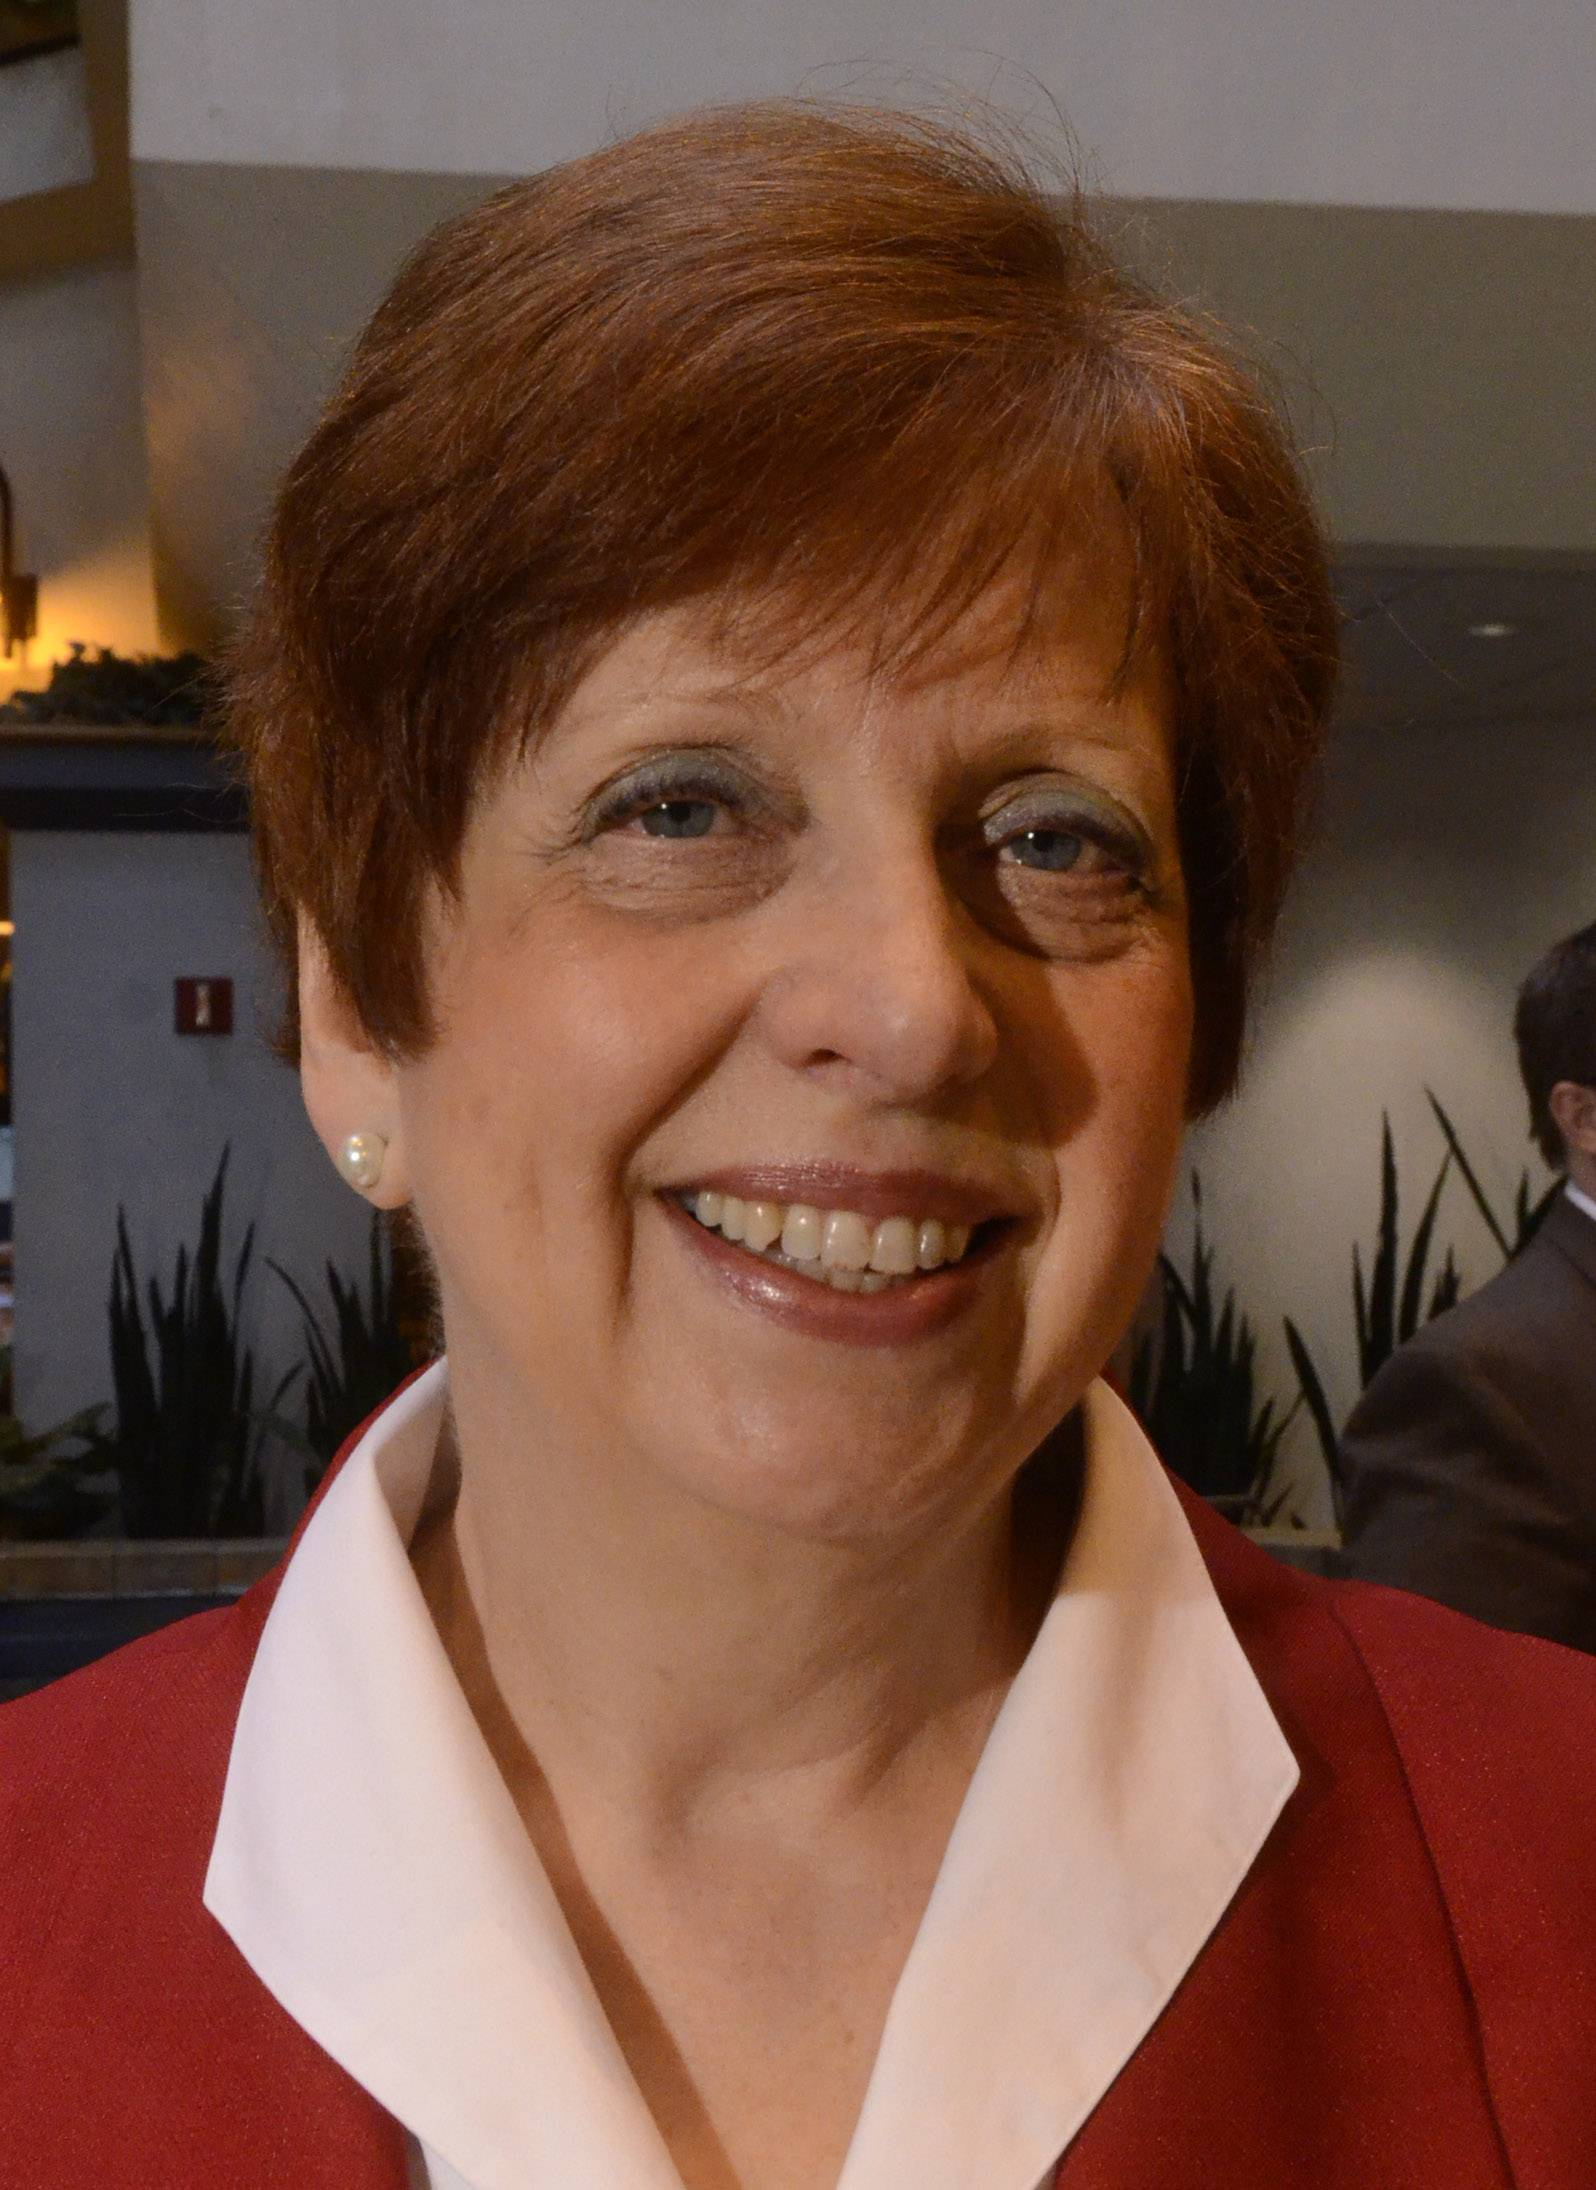 Mount Prospect Mayor Arlene Juracek